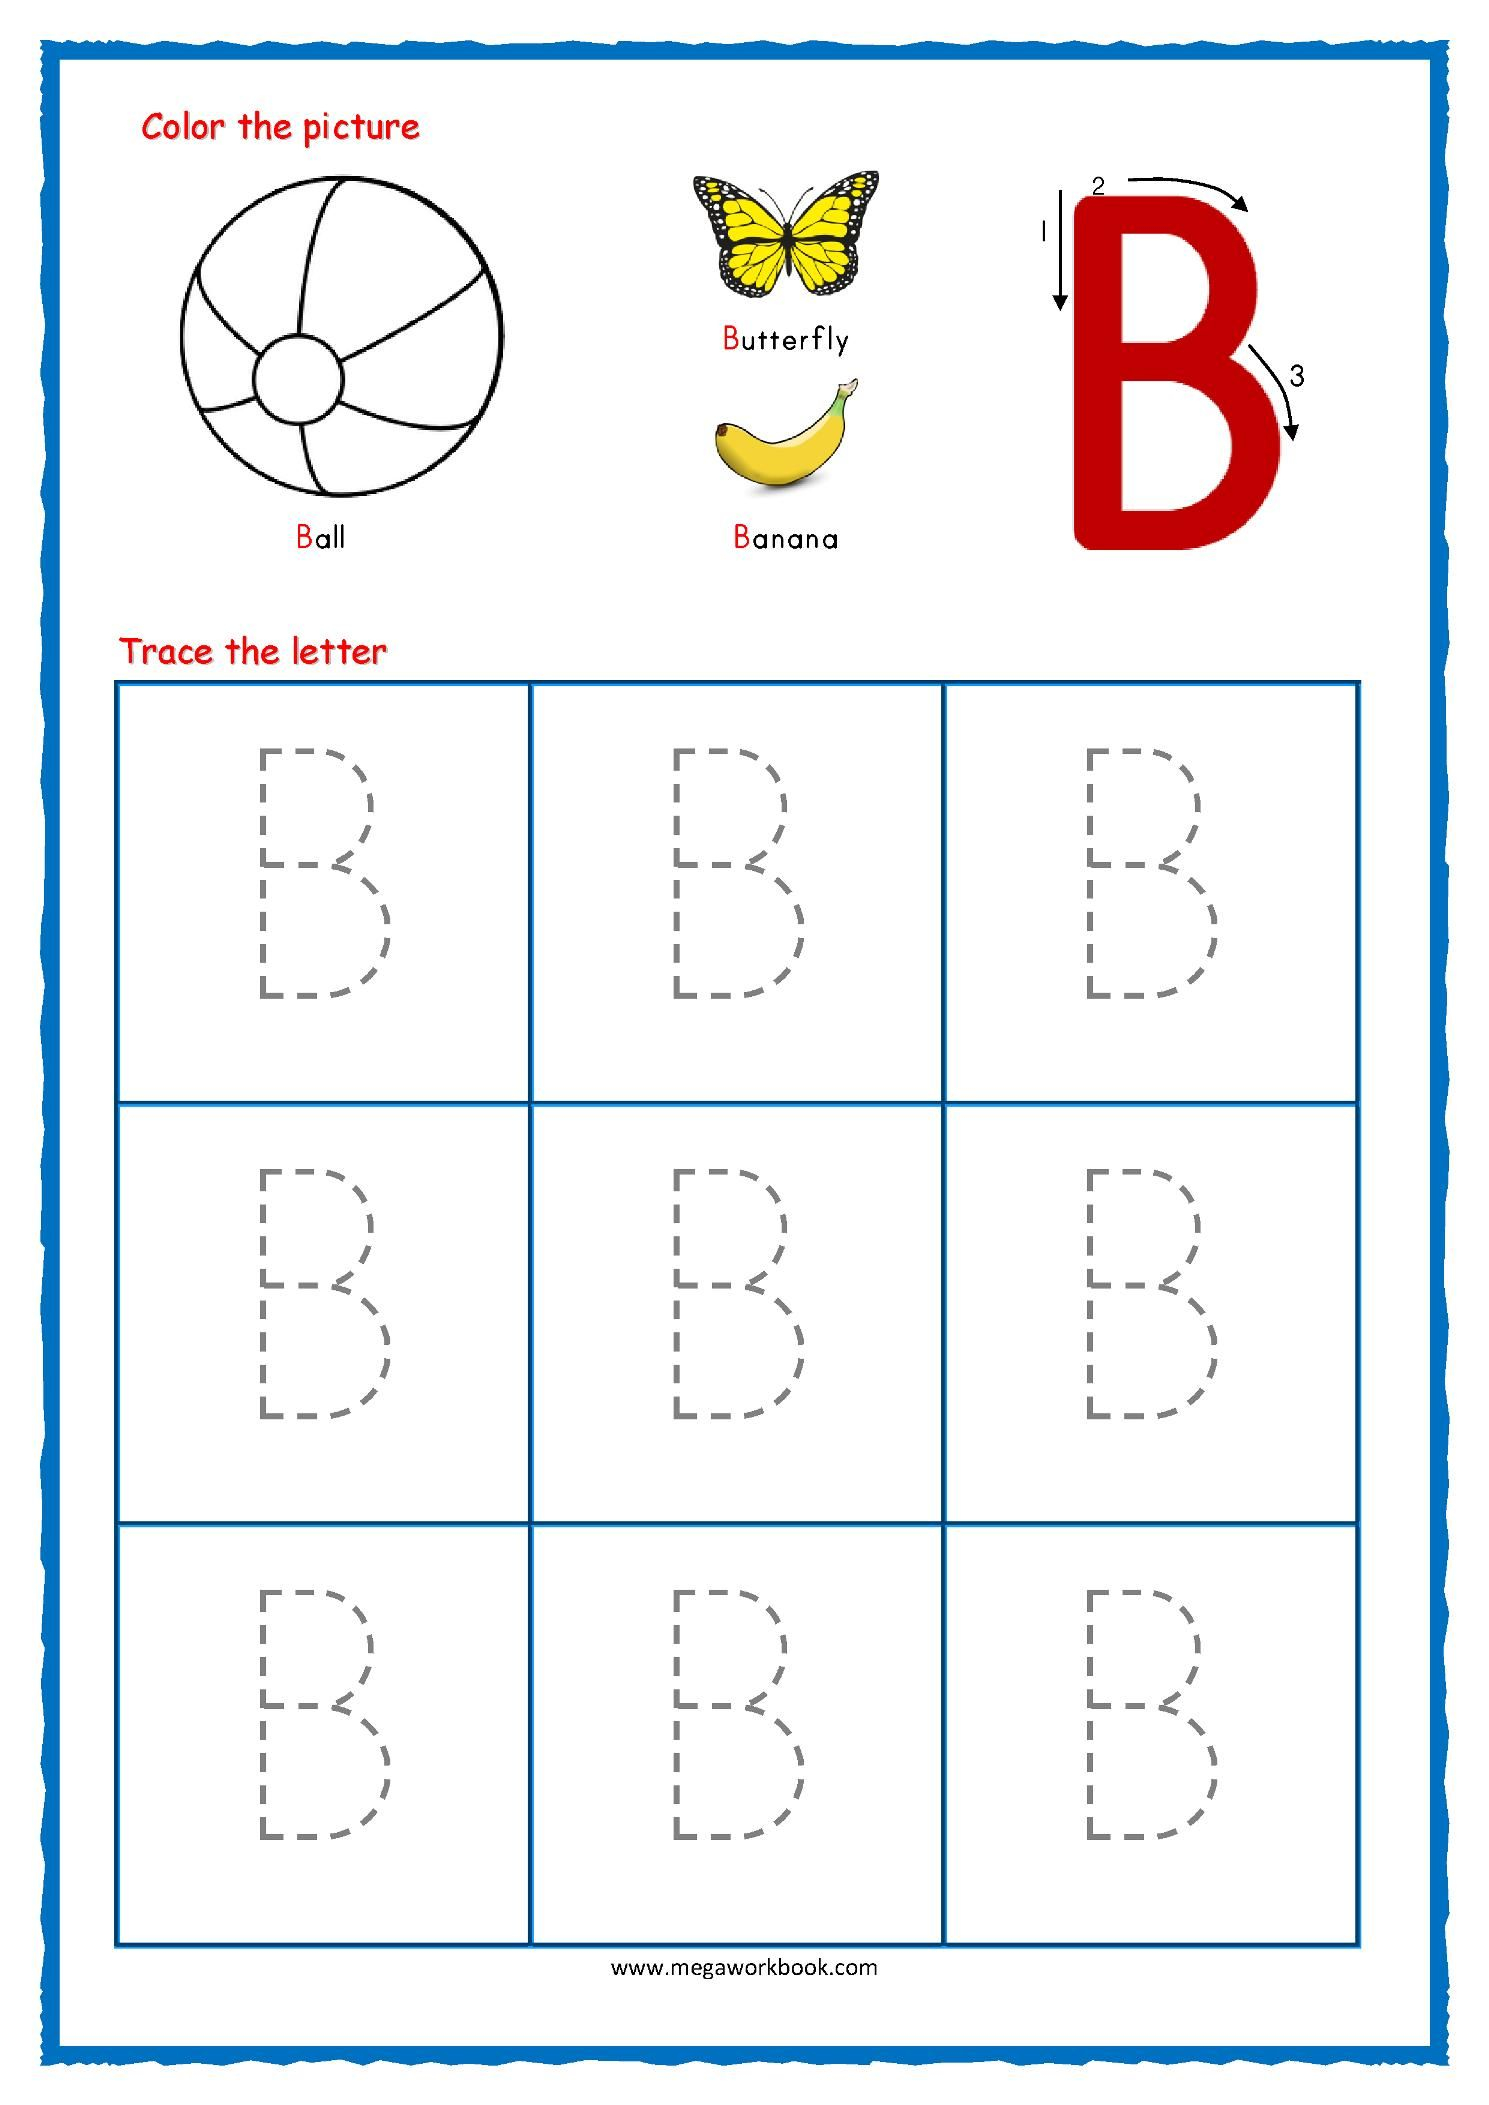 16 Printable Worksheets Alphabet Tracing In 2020 | Alphabet